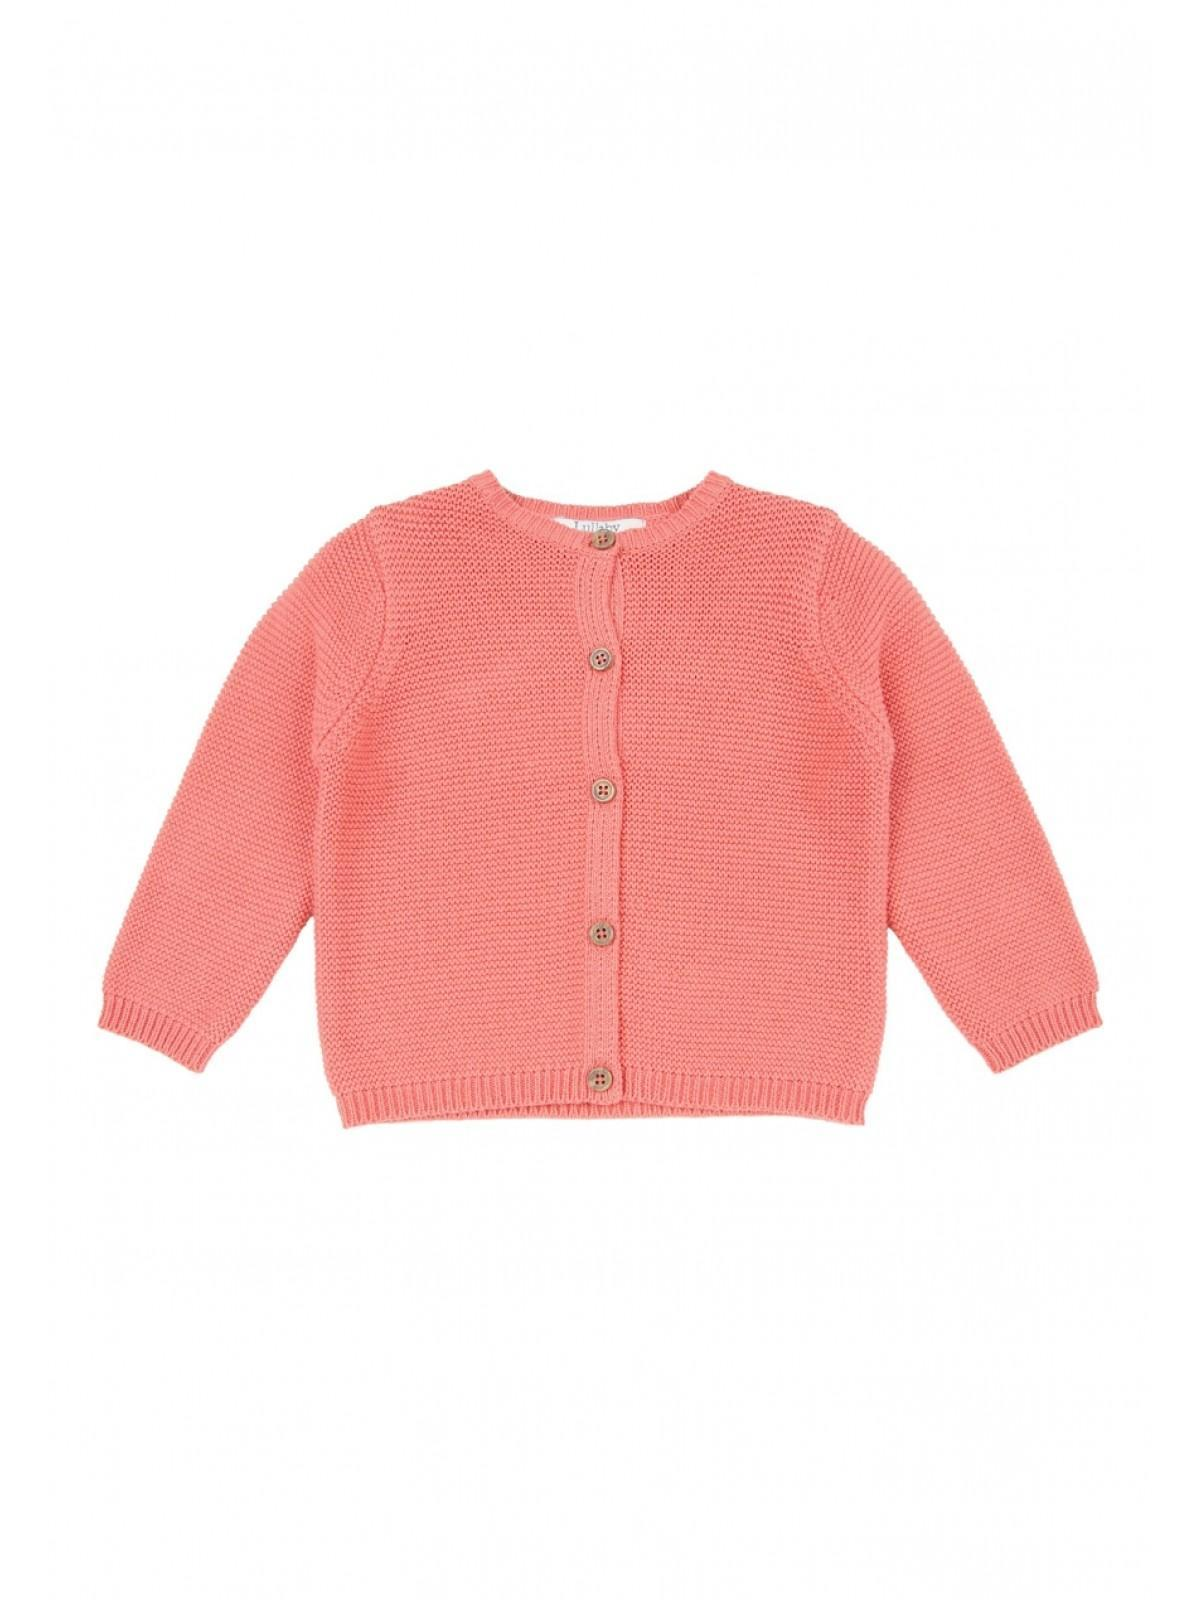 86ee17a4a Baby Girls Pink Chunky Knit Cardigan